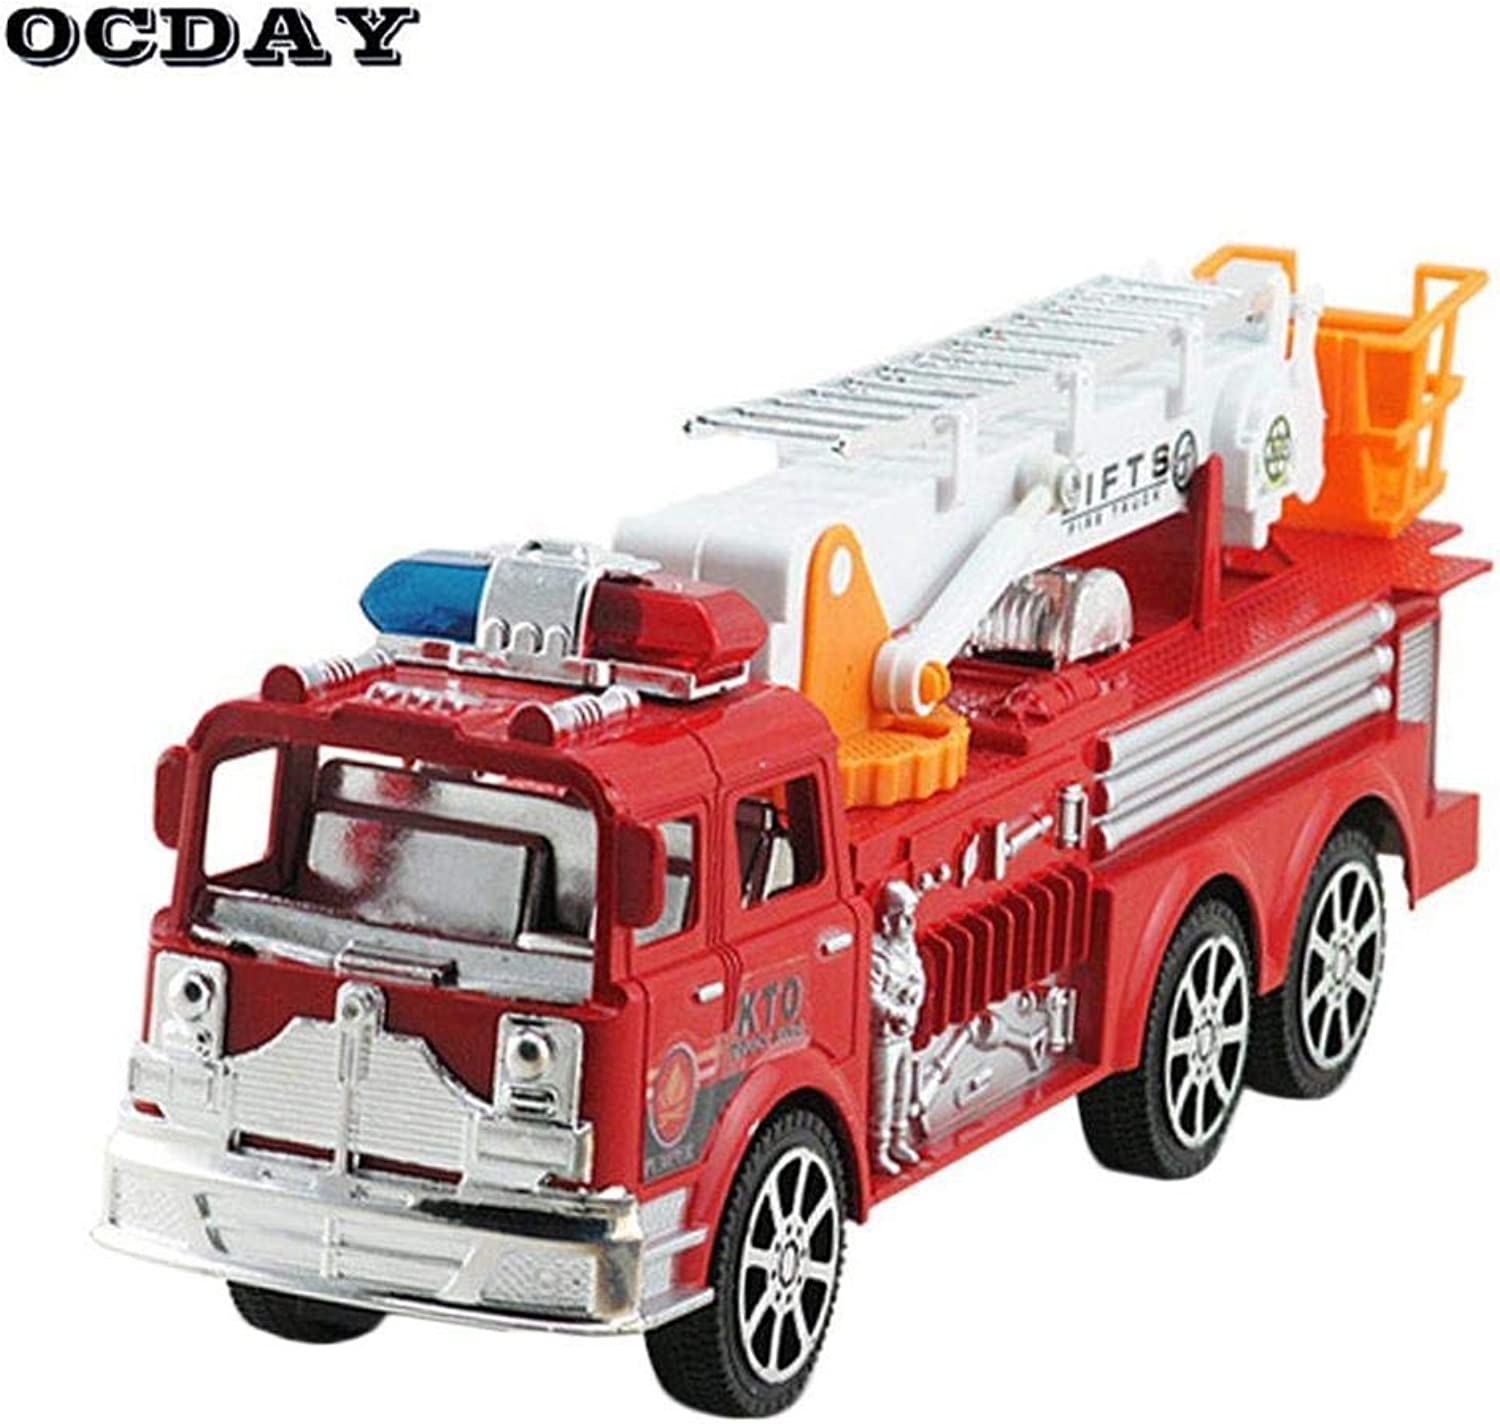 YKS Diecast Firetruck Artificial Model Cars Engineering Vehicle Simulation Truck with Folding Ladder Educational Toys Baby Gifts Aerial Fire Truck